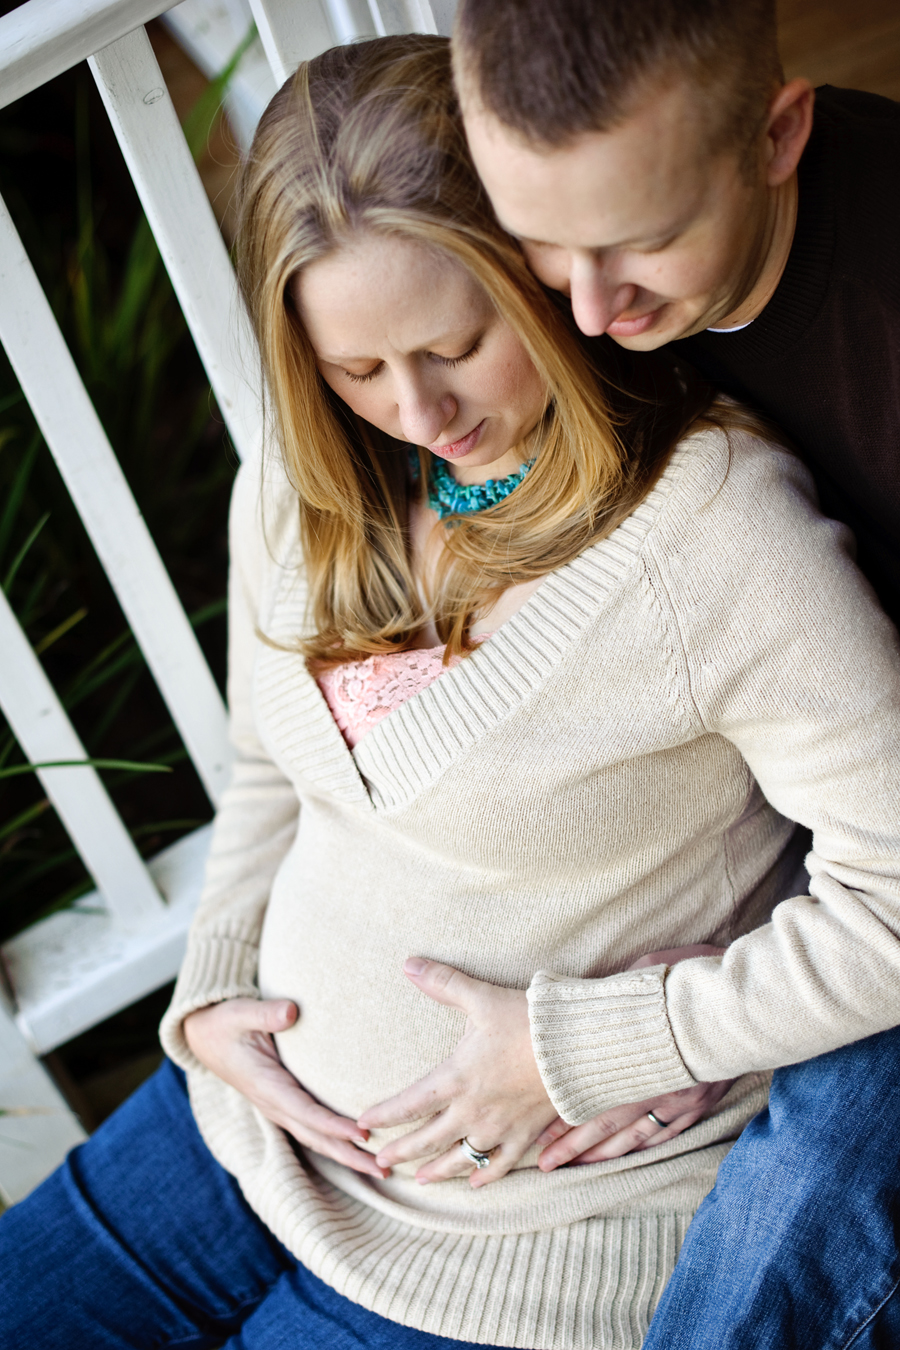 austin_pregnancy_maternity_photography19.jpg